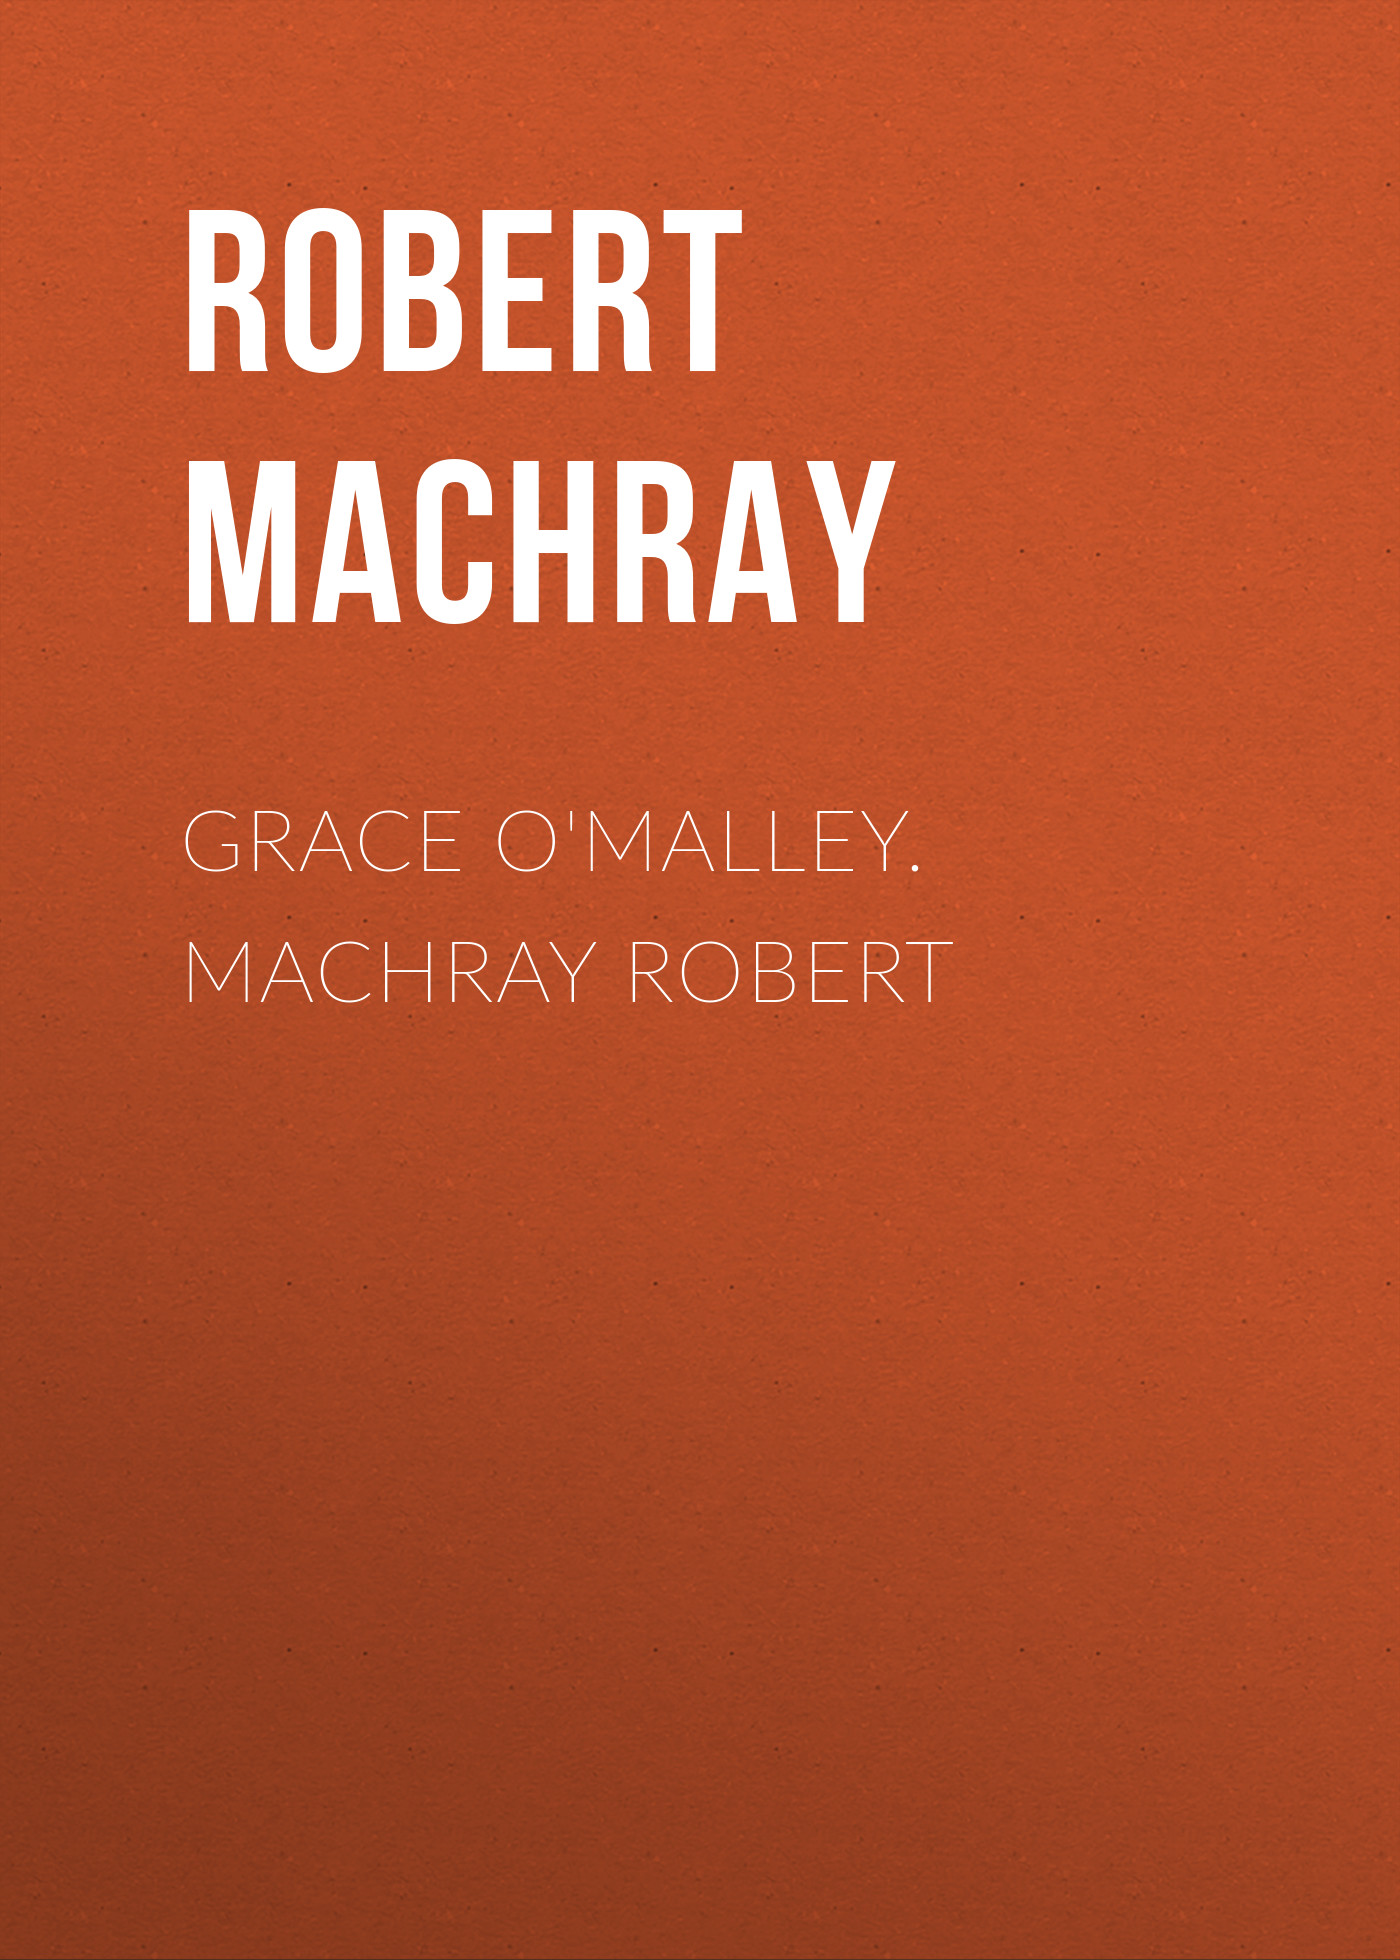 Machray Robert Grace O'Malley. Machray Robert robert